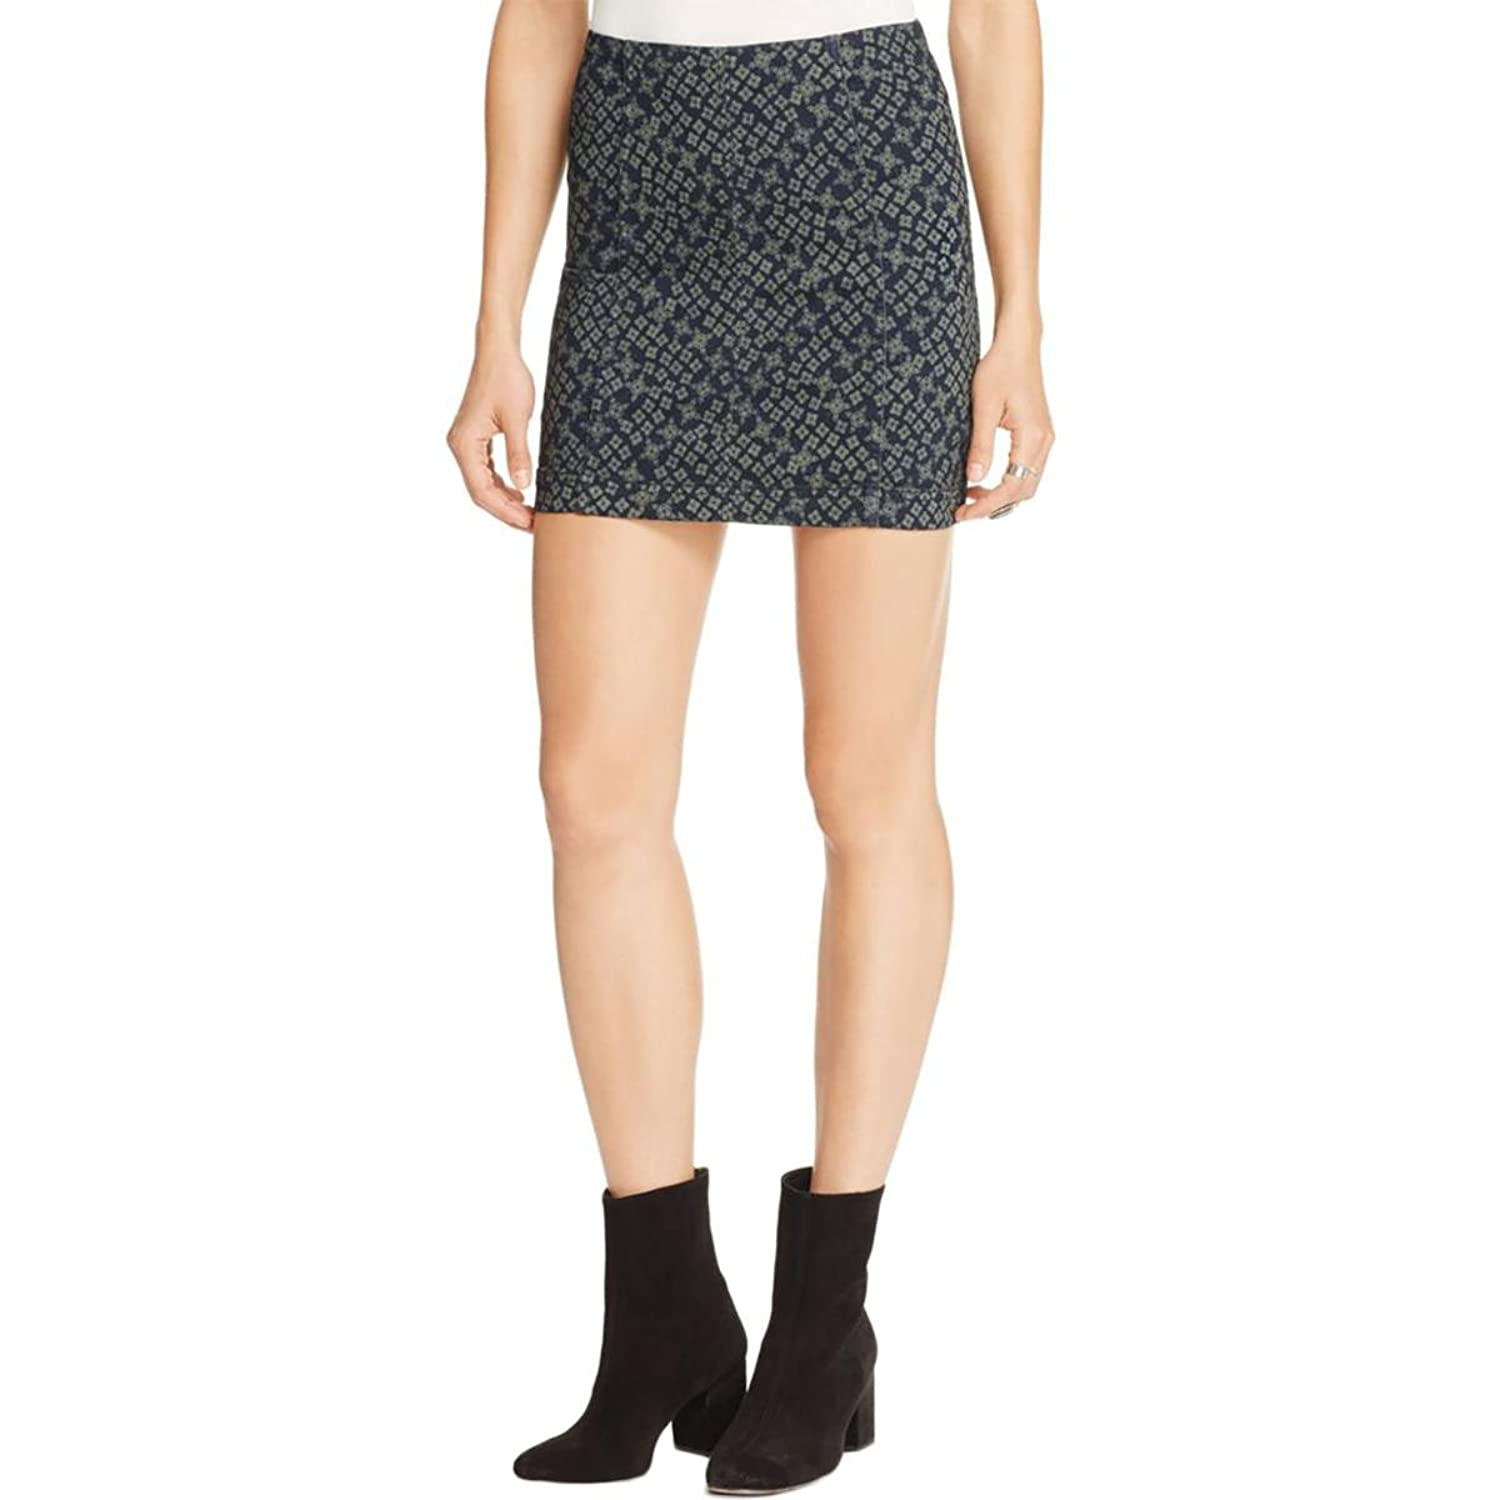 Free People Womens Printed Floral Mini Skirt for cheap